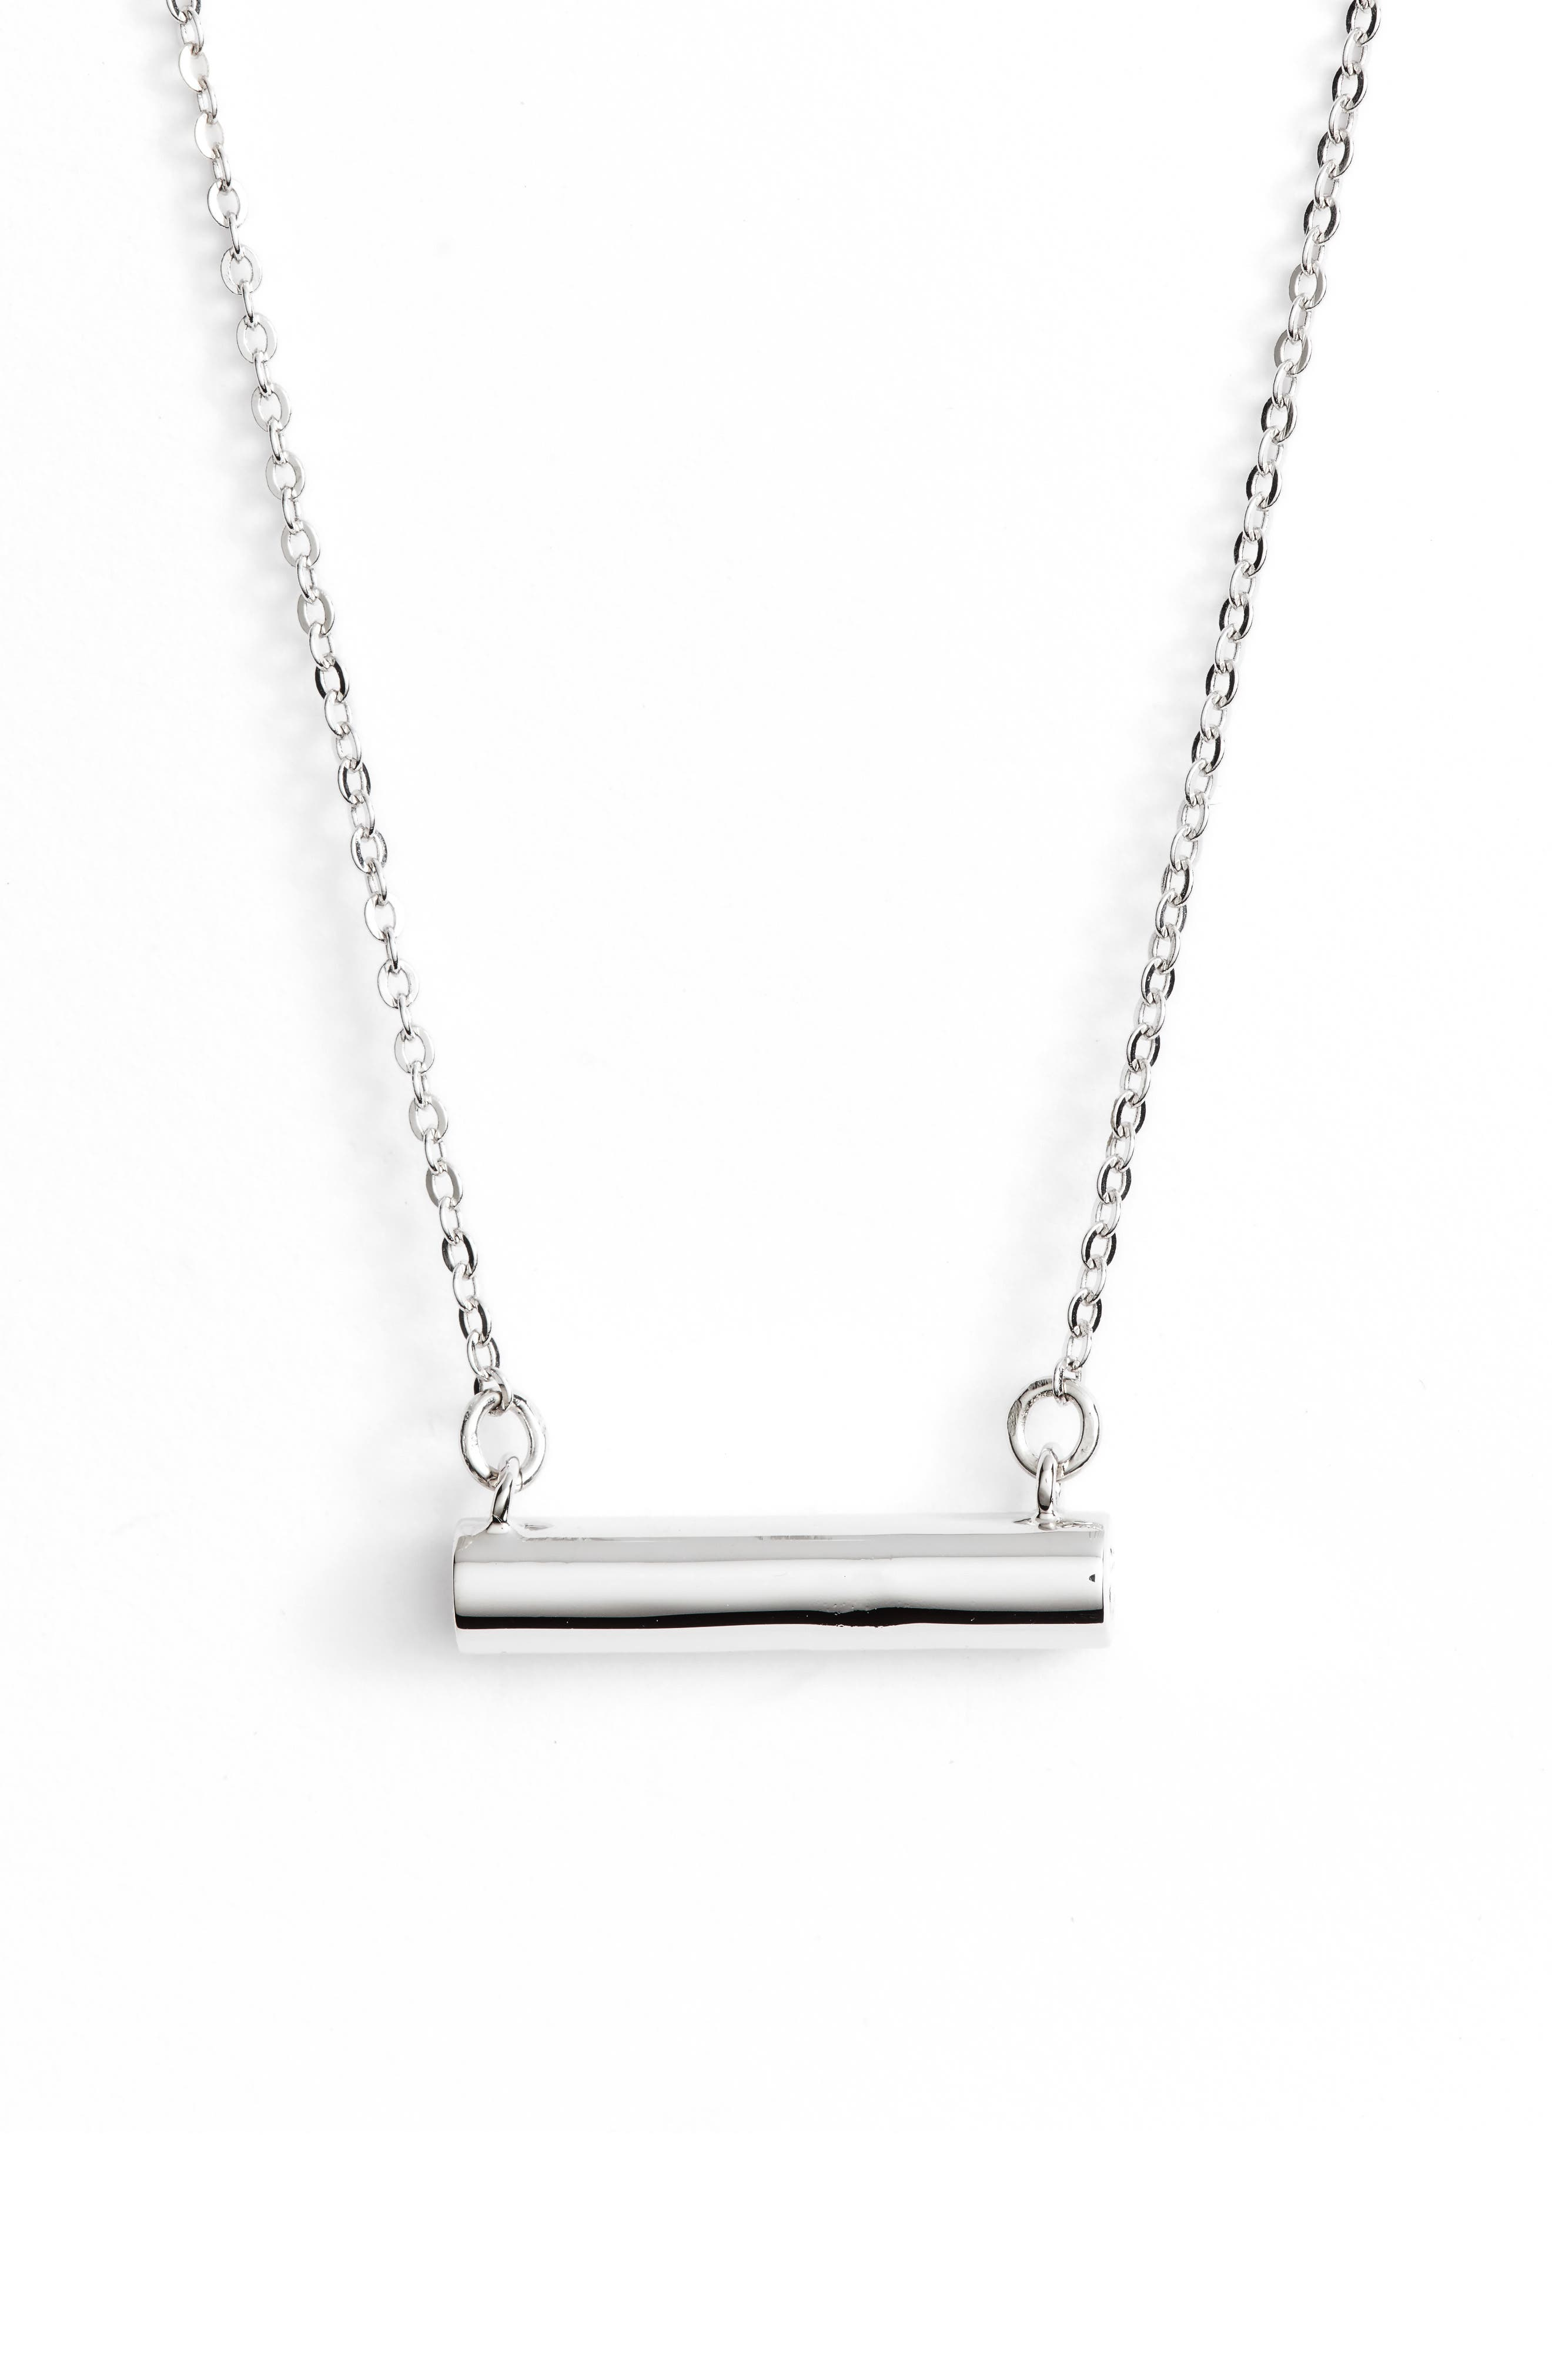 Smiley Face Bar Pendant Necklace,                             Main thumbnail 1, color,                             SILVER